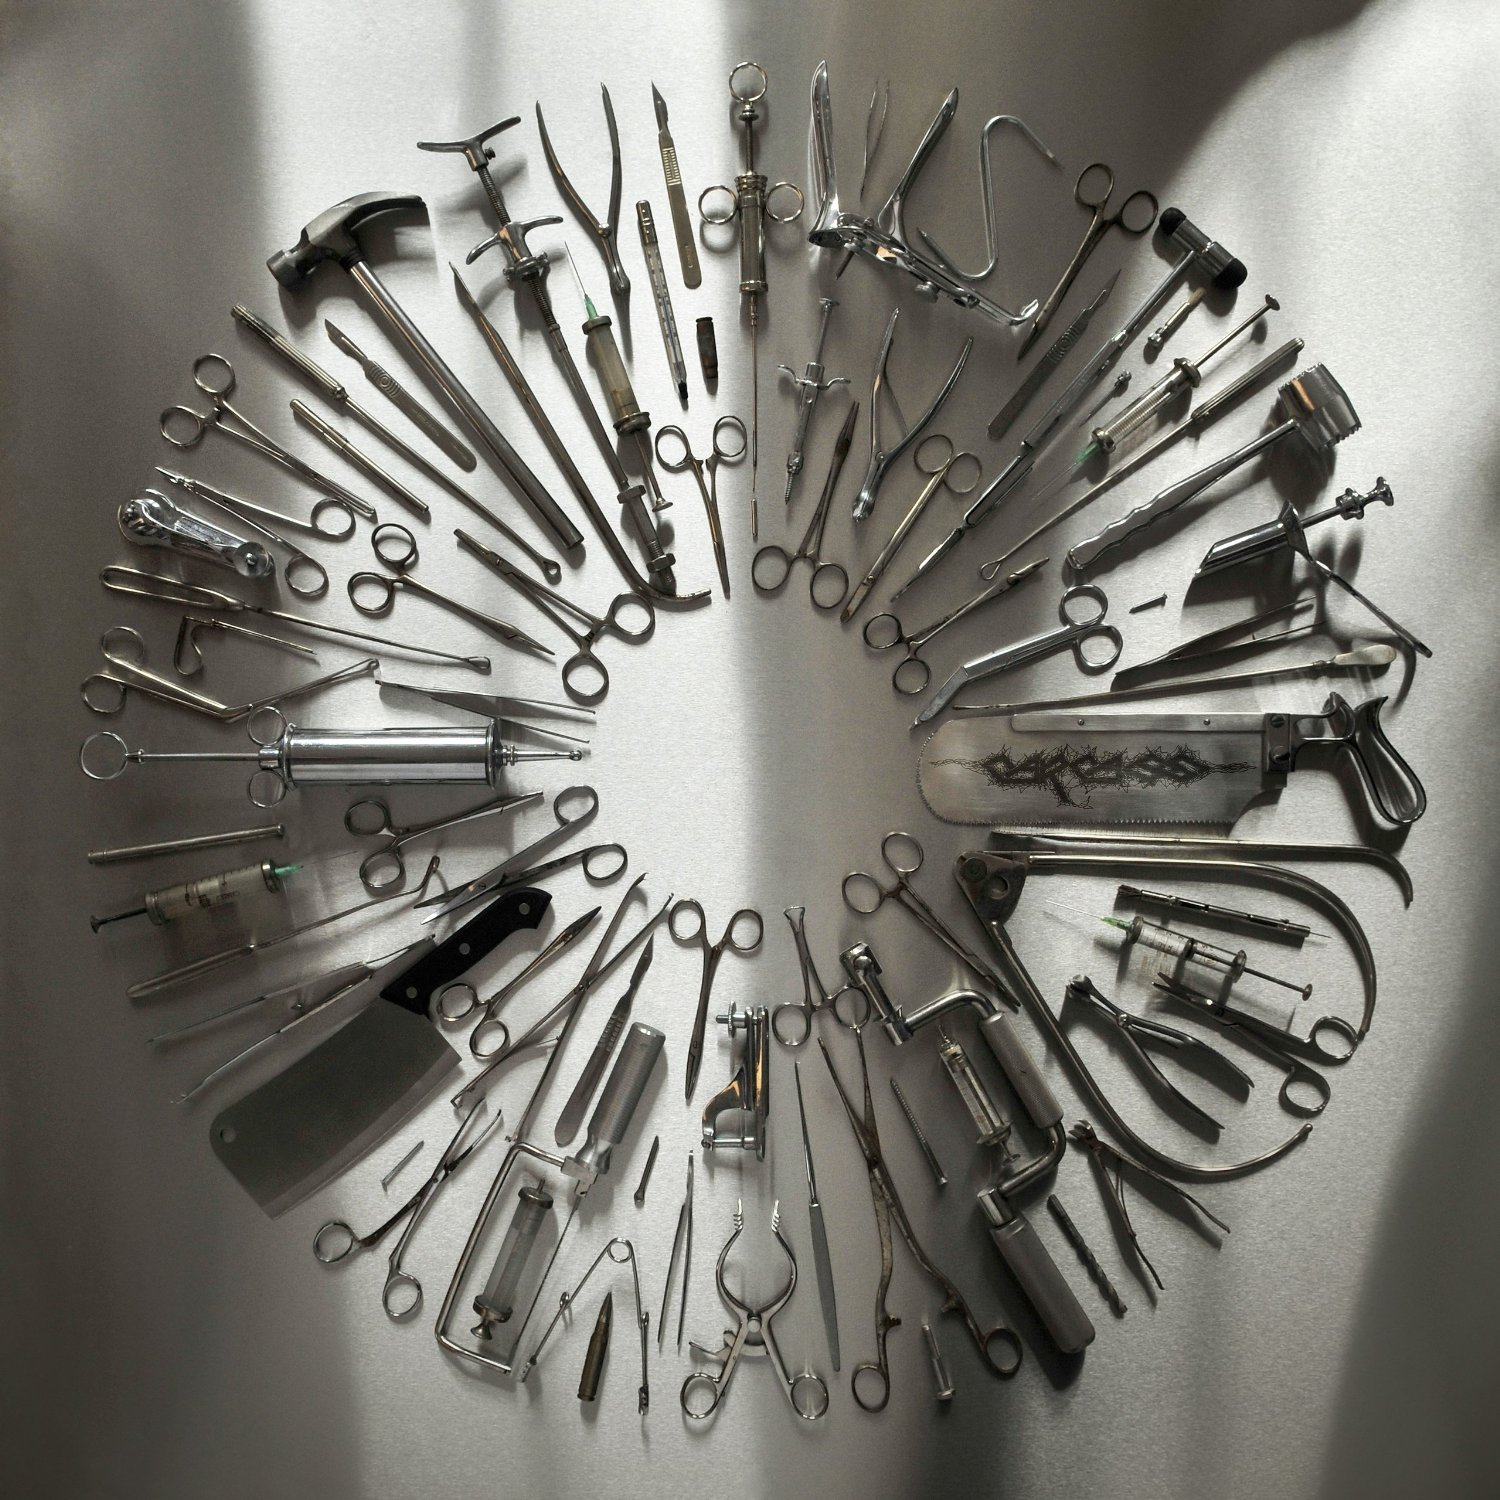 Carcass- Surgical Steel